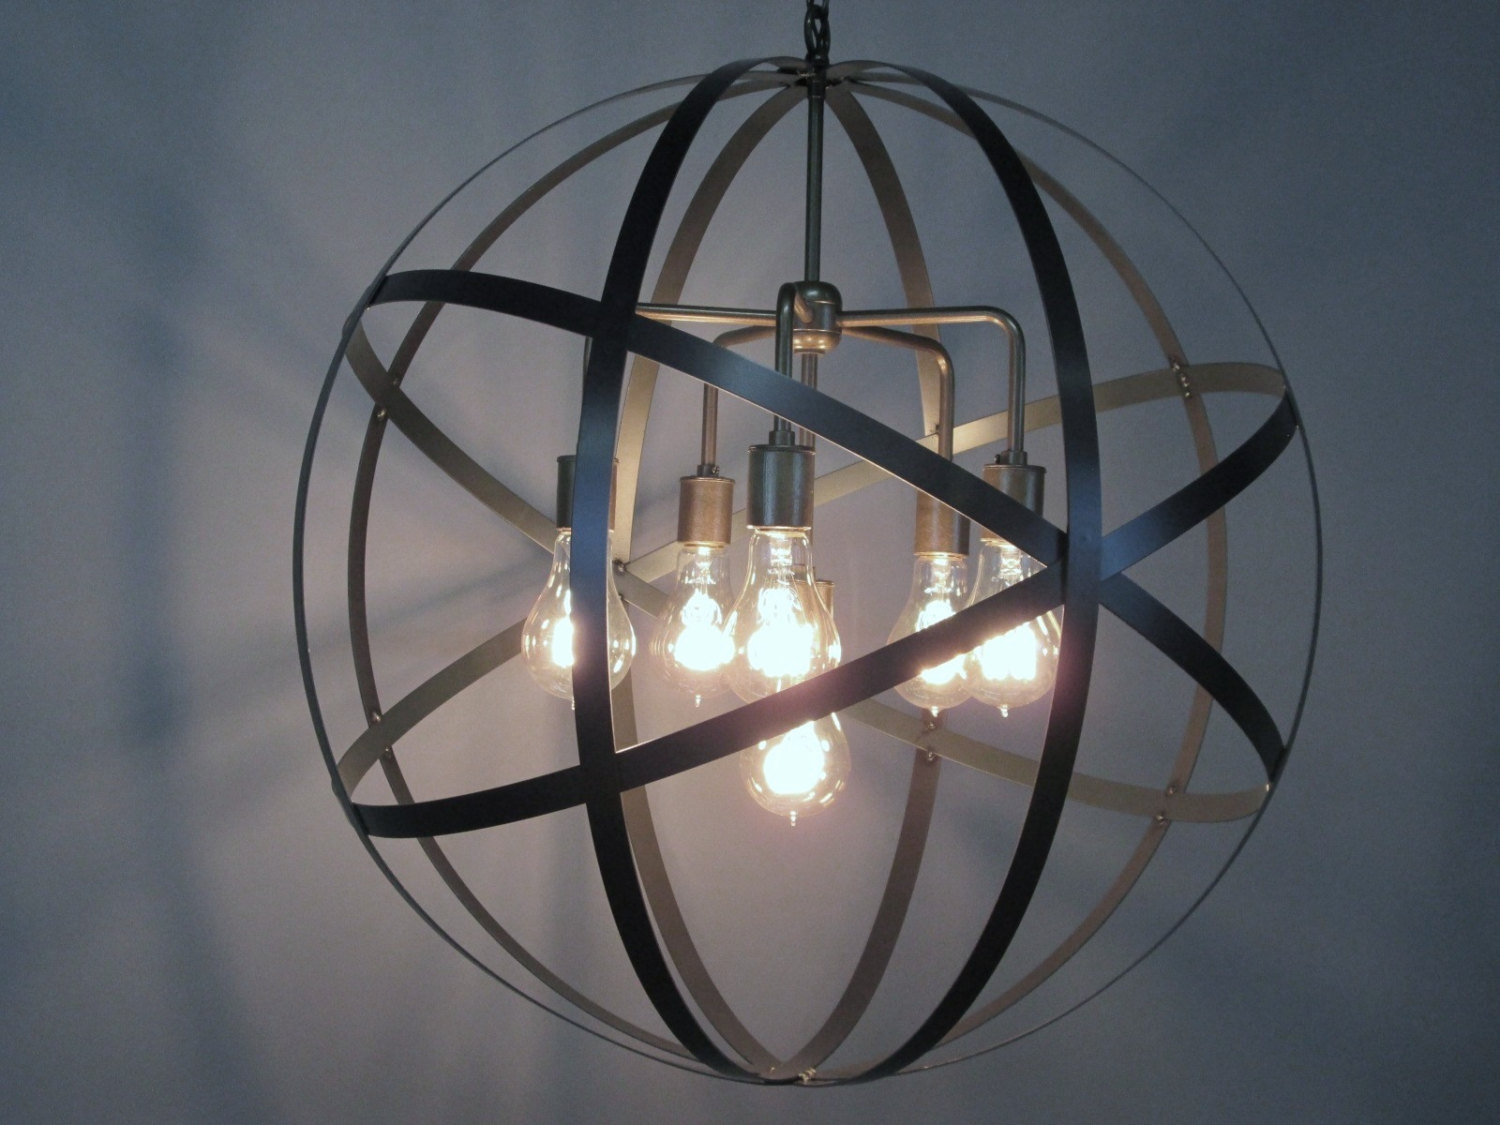 Accessories Home Interior Design And Decor With Sphere Chandelier Throughout Metal Sphere Chandelier (Image 2 of 15)